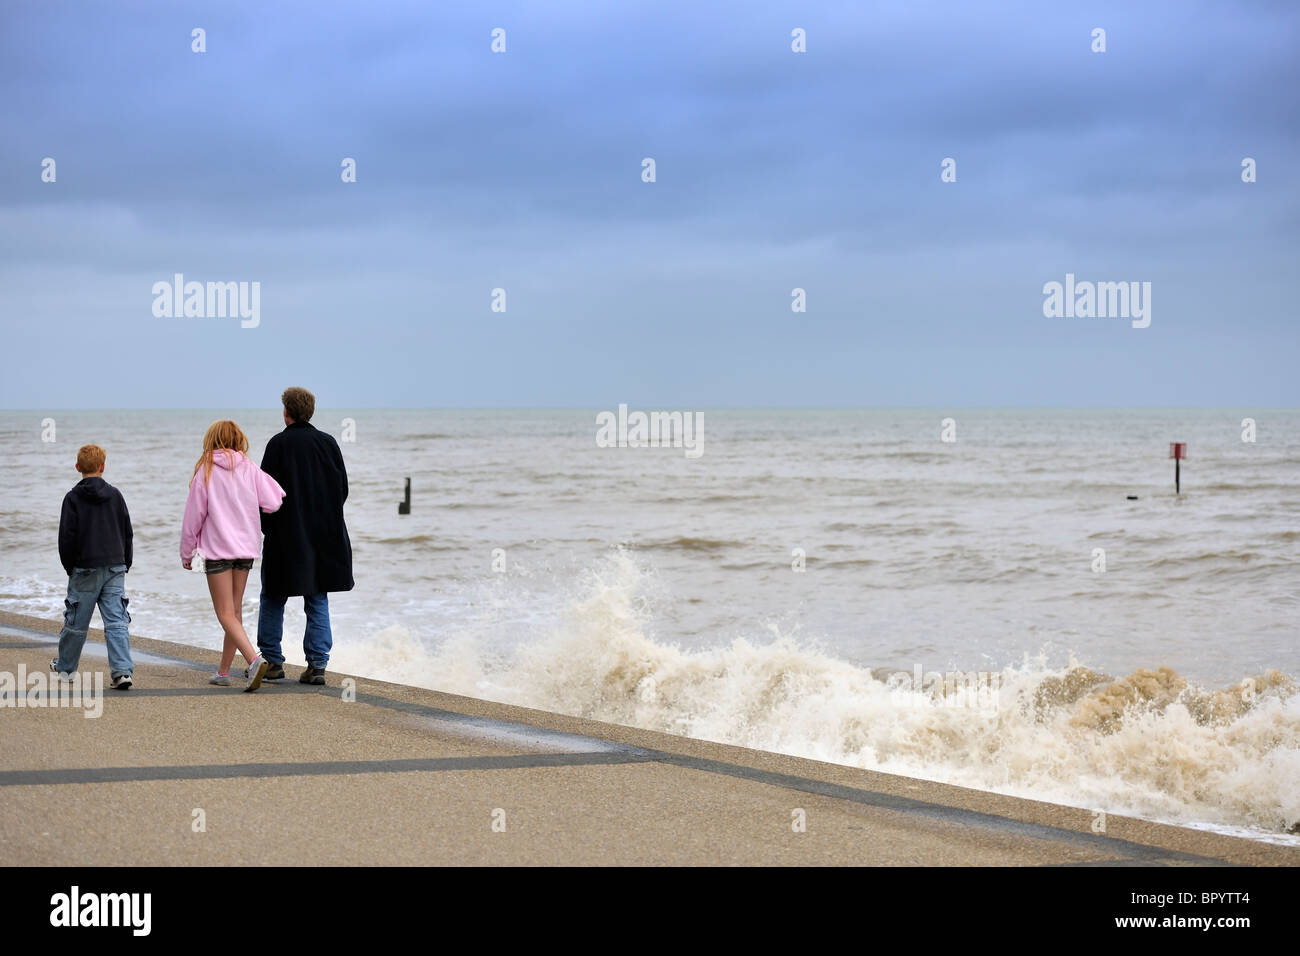 A walk along the promenade - Stock Image